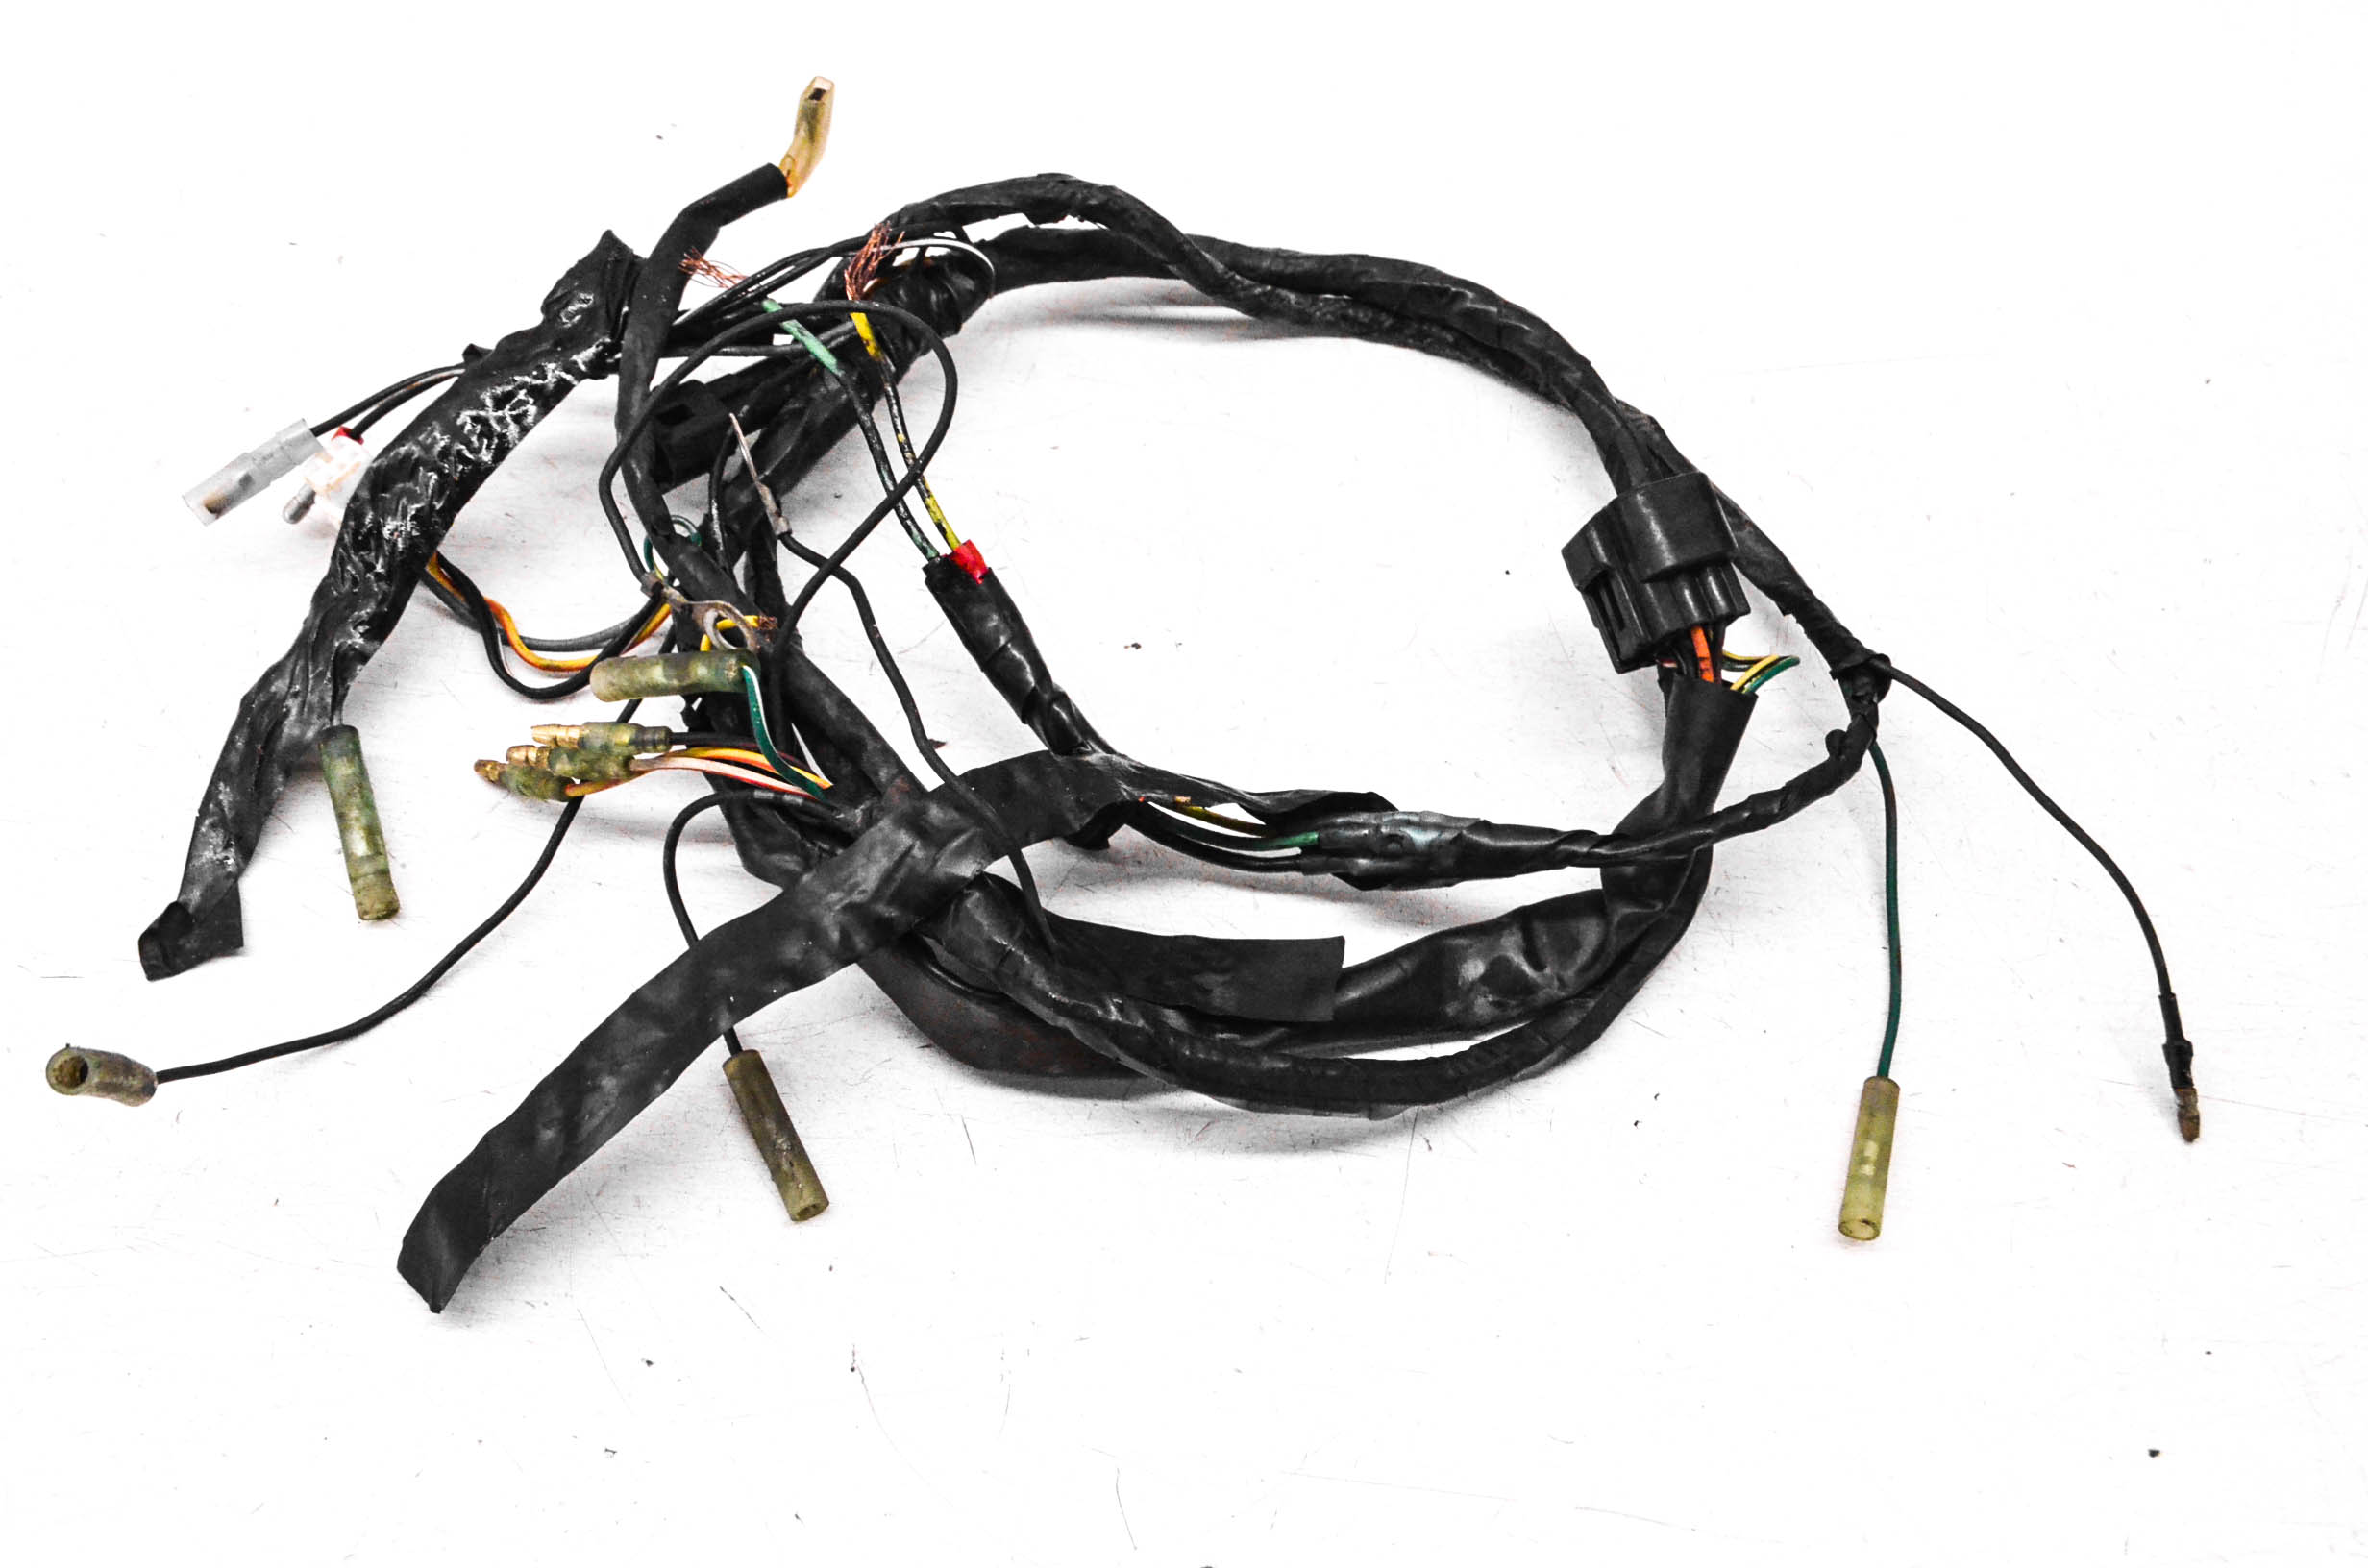 03 Yamaha Blaster 200 2x4 Wire Harness Electrical Wiring